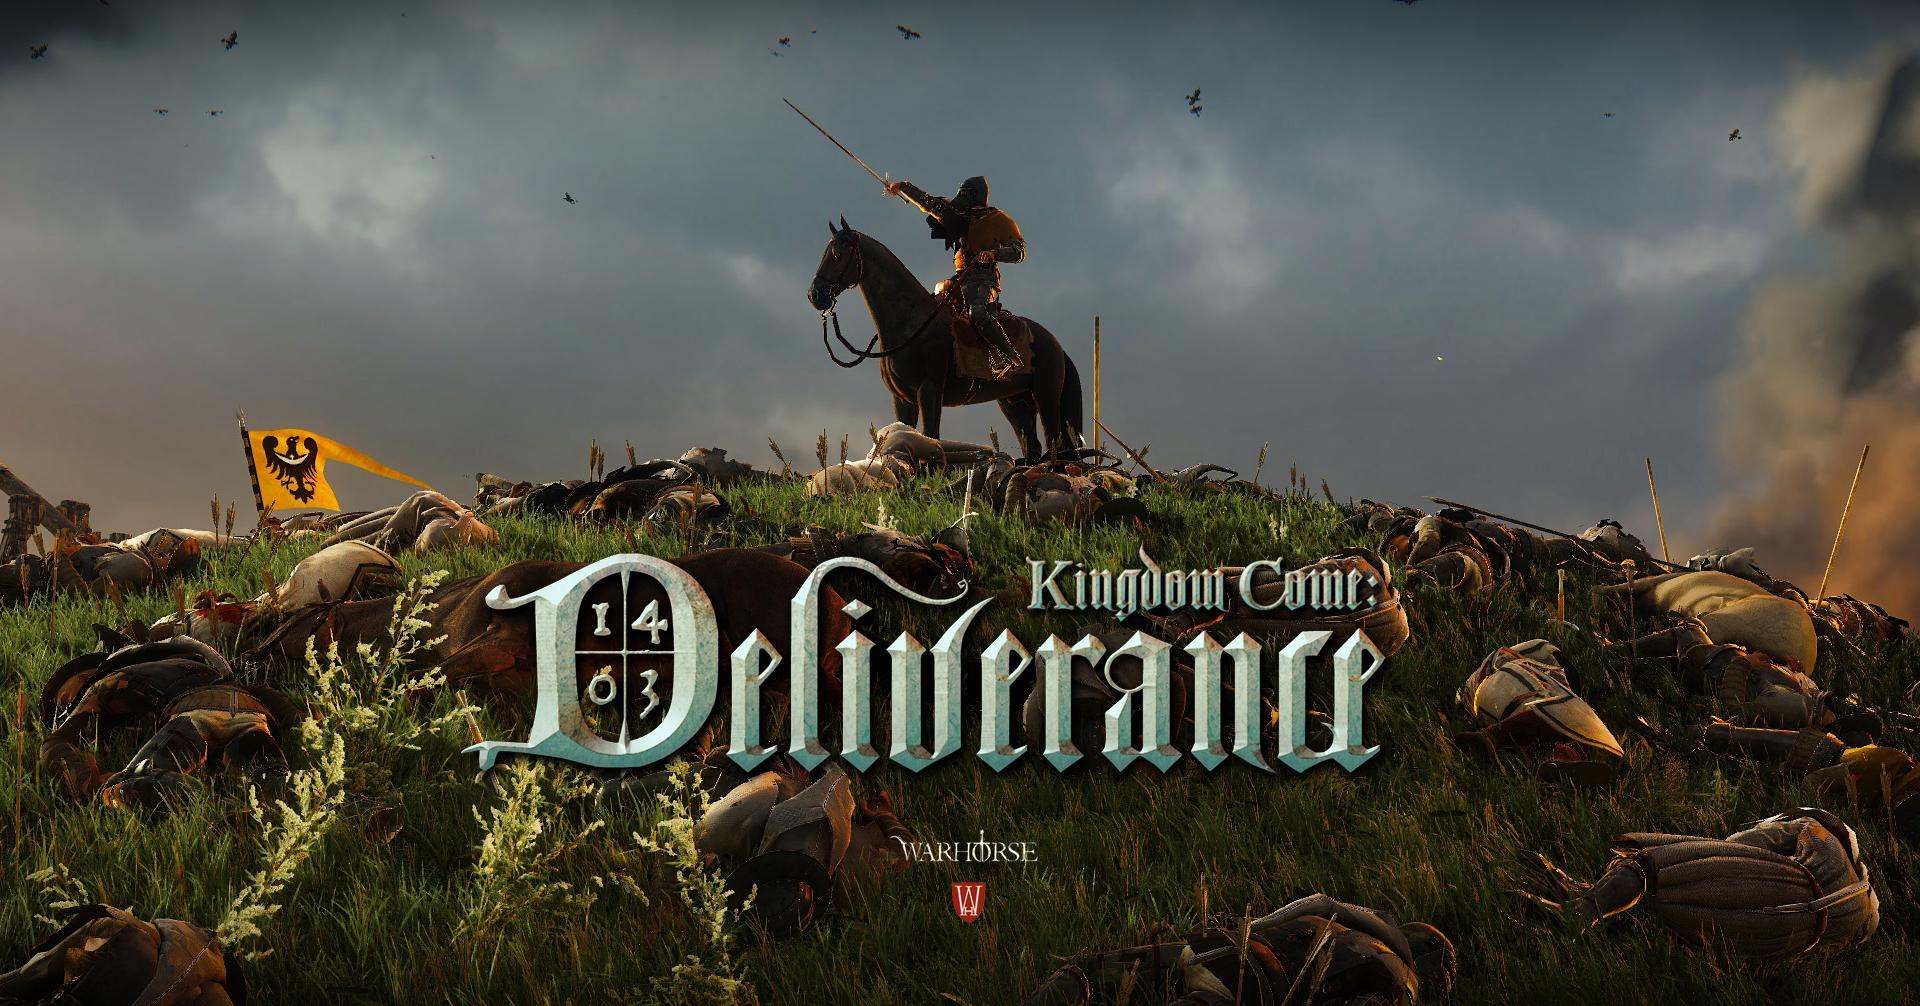 Kingdom Come: Deliverence plakát